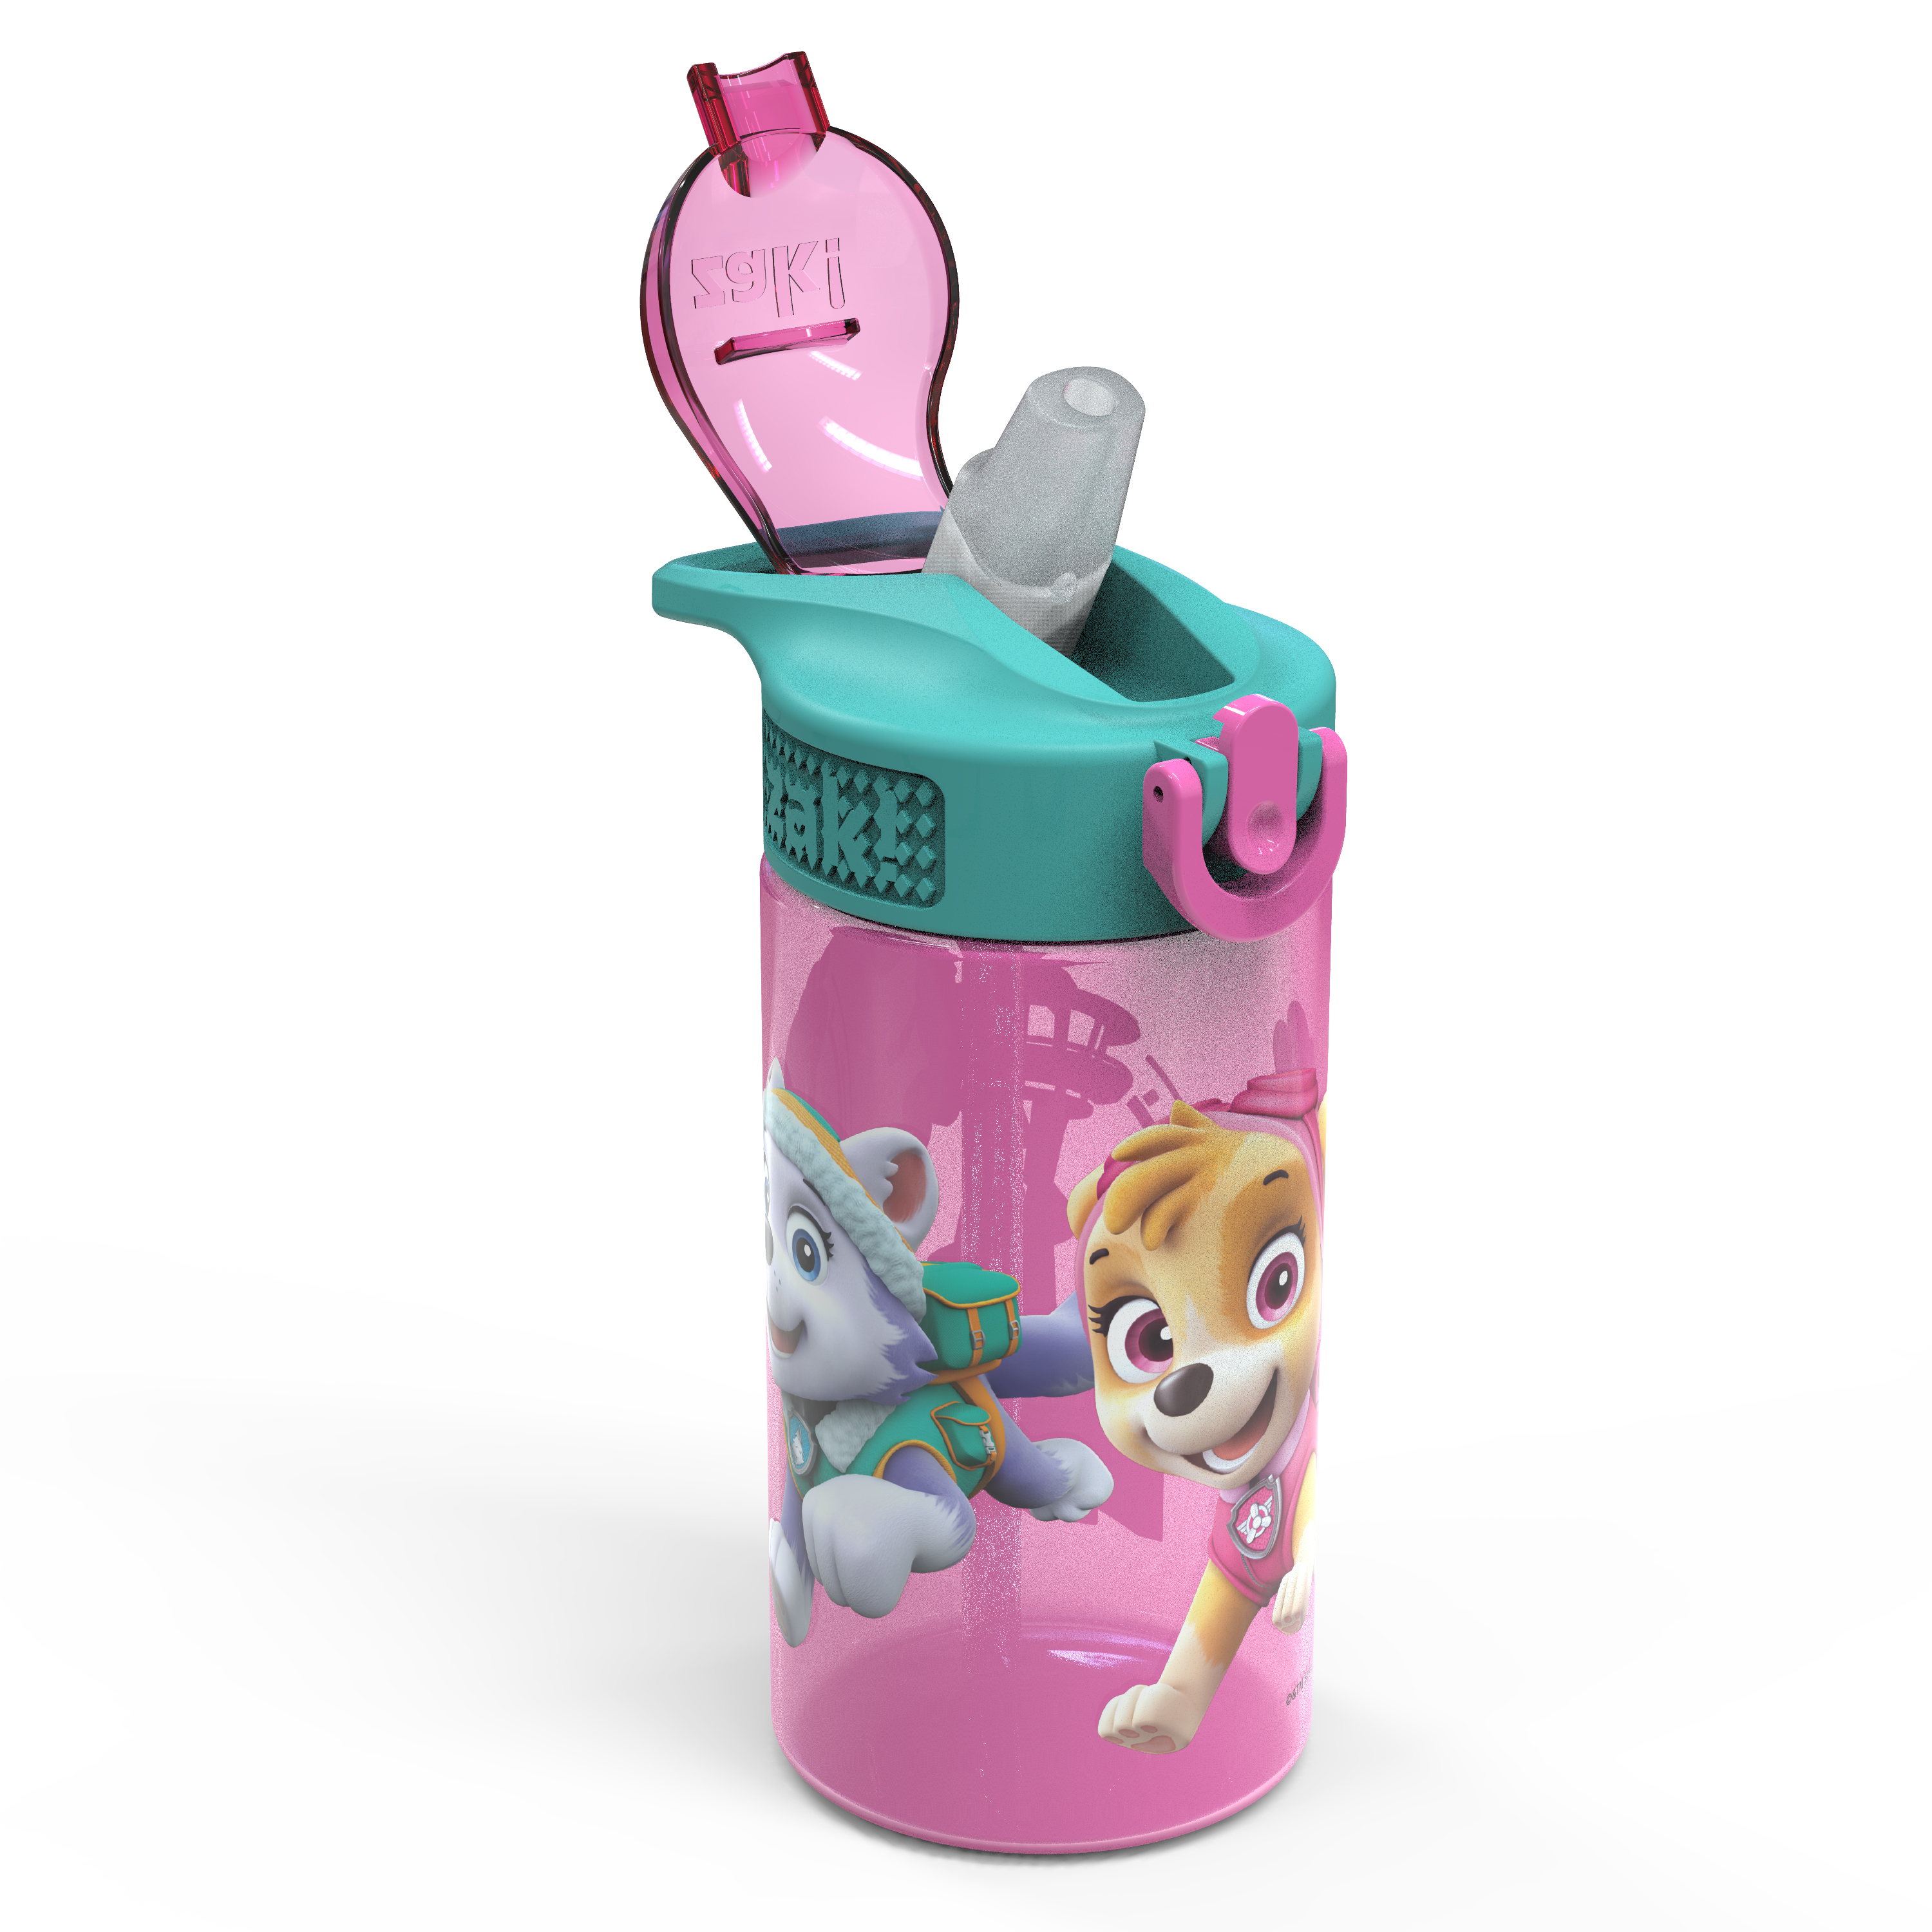 Paw Patrol 16 ounce Reusable Plastic Water Bottle with Straw, Skye, 2-piece set slideshow image 2